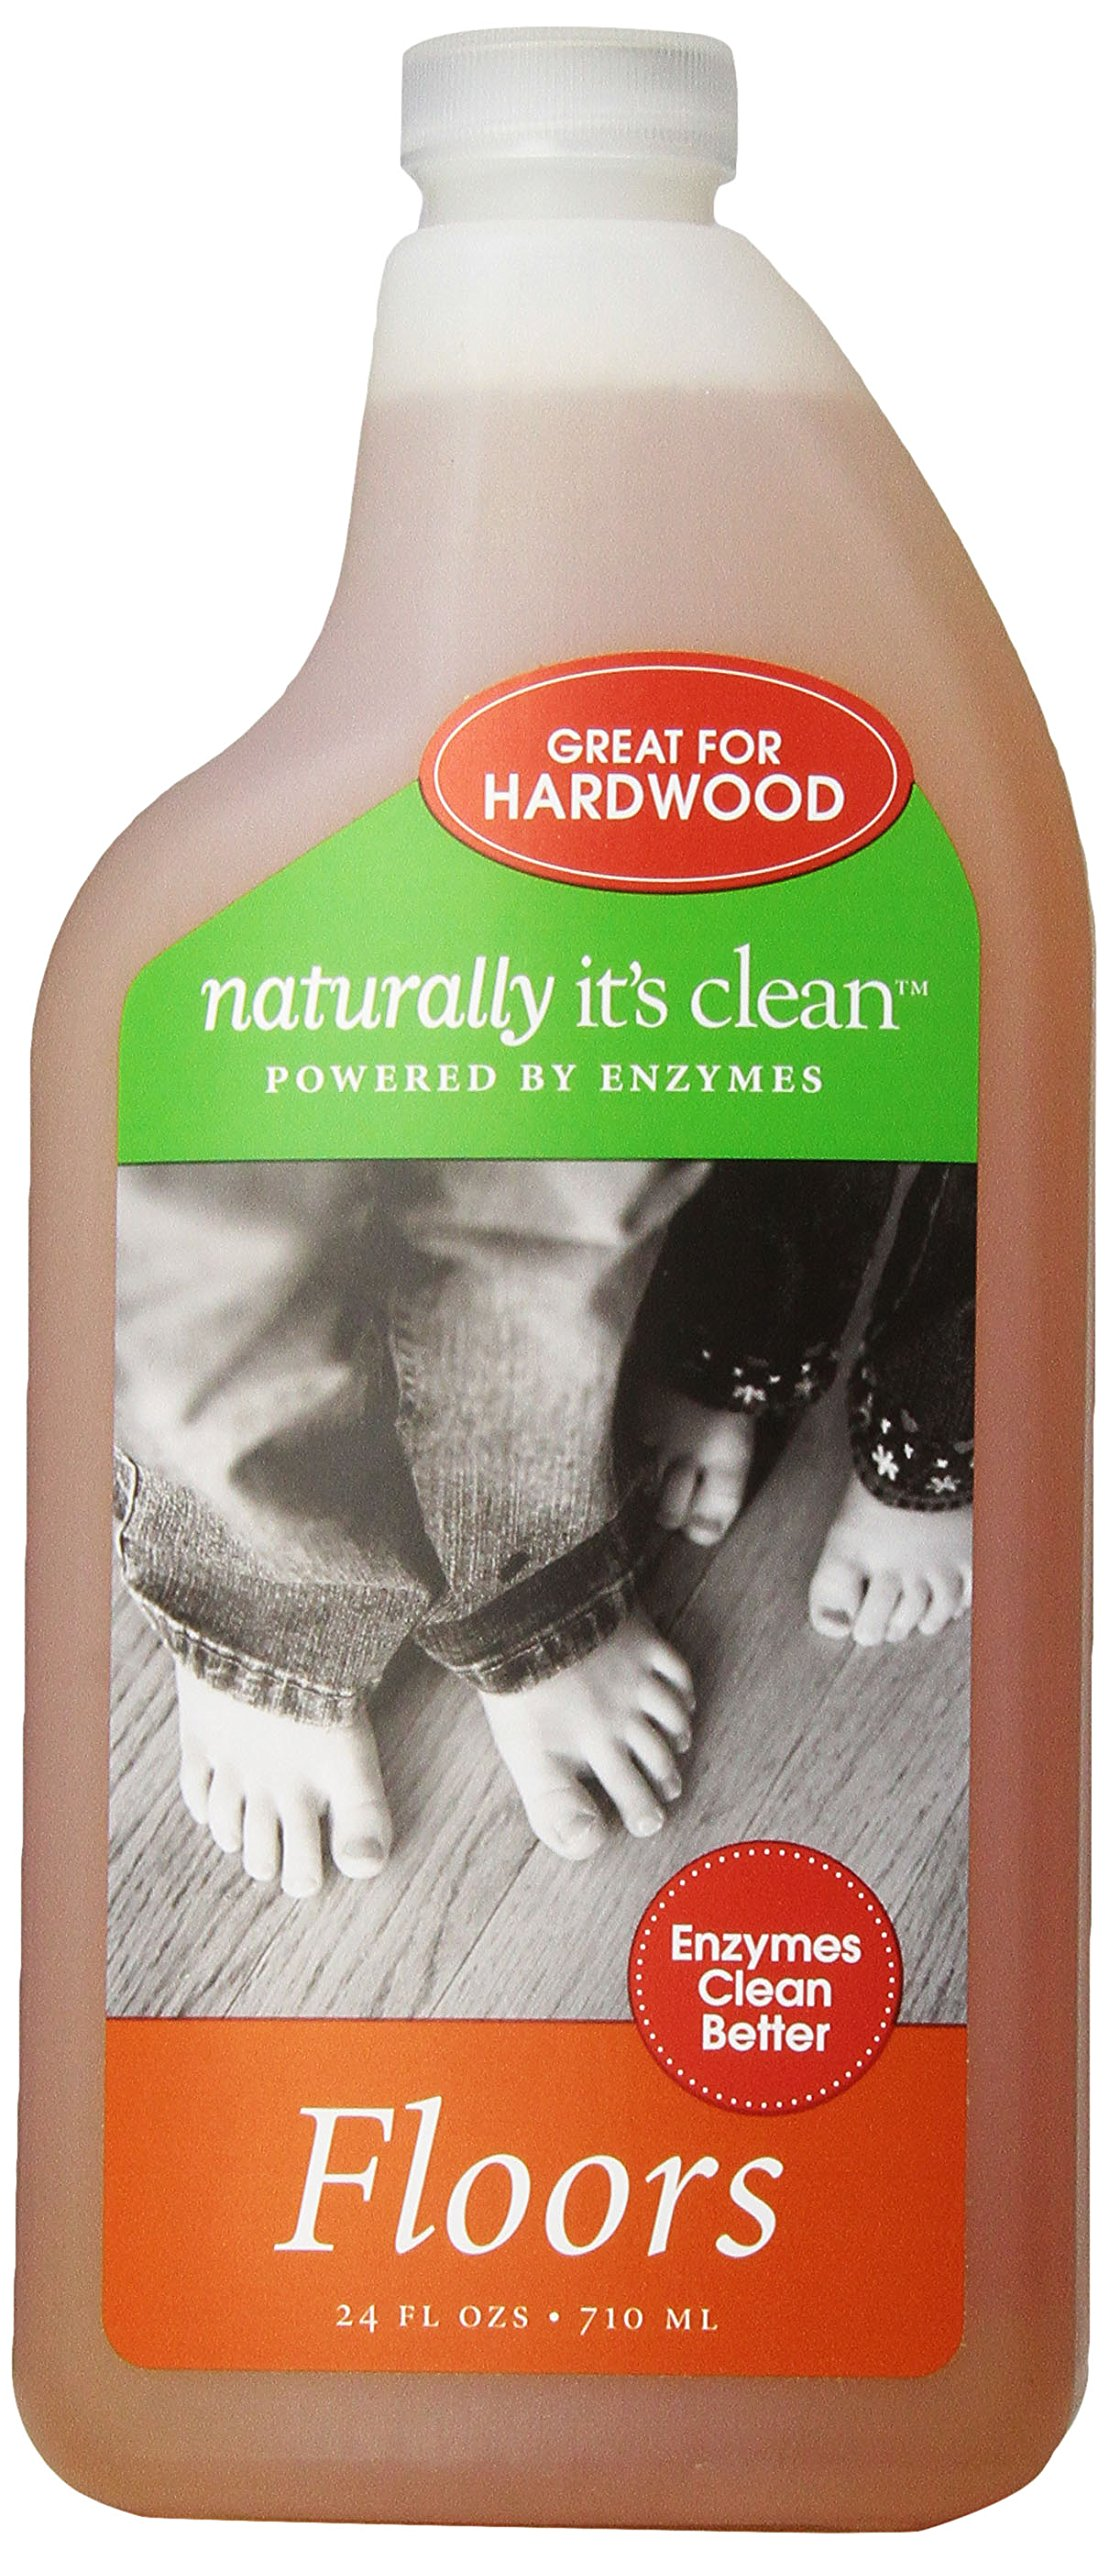 8 Pack Naturally It's Clean Natural Hard Wood All Floor Cleaner Concentrate Bathroom Refill Eco Green Non Toxic Surface All Purpose No Streak 24oz Plant-Based Child Pet Safe Organic Enzyme 24gal